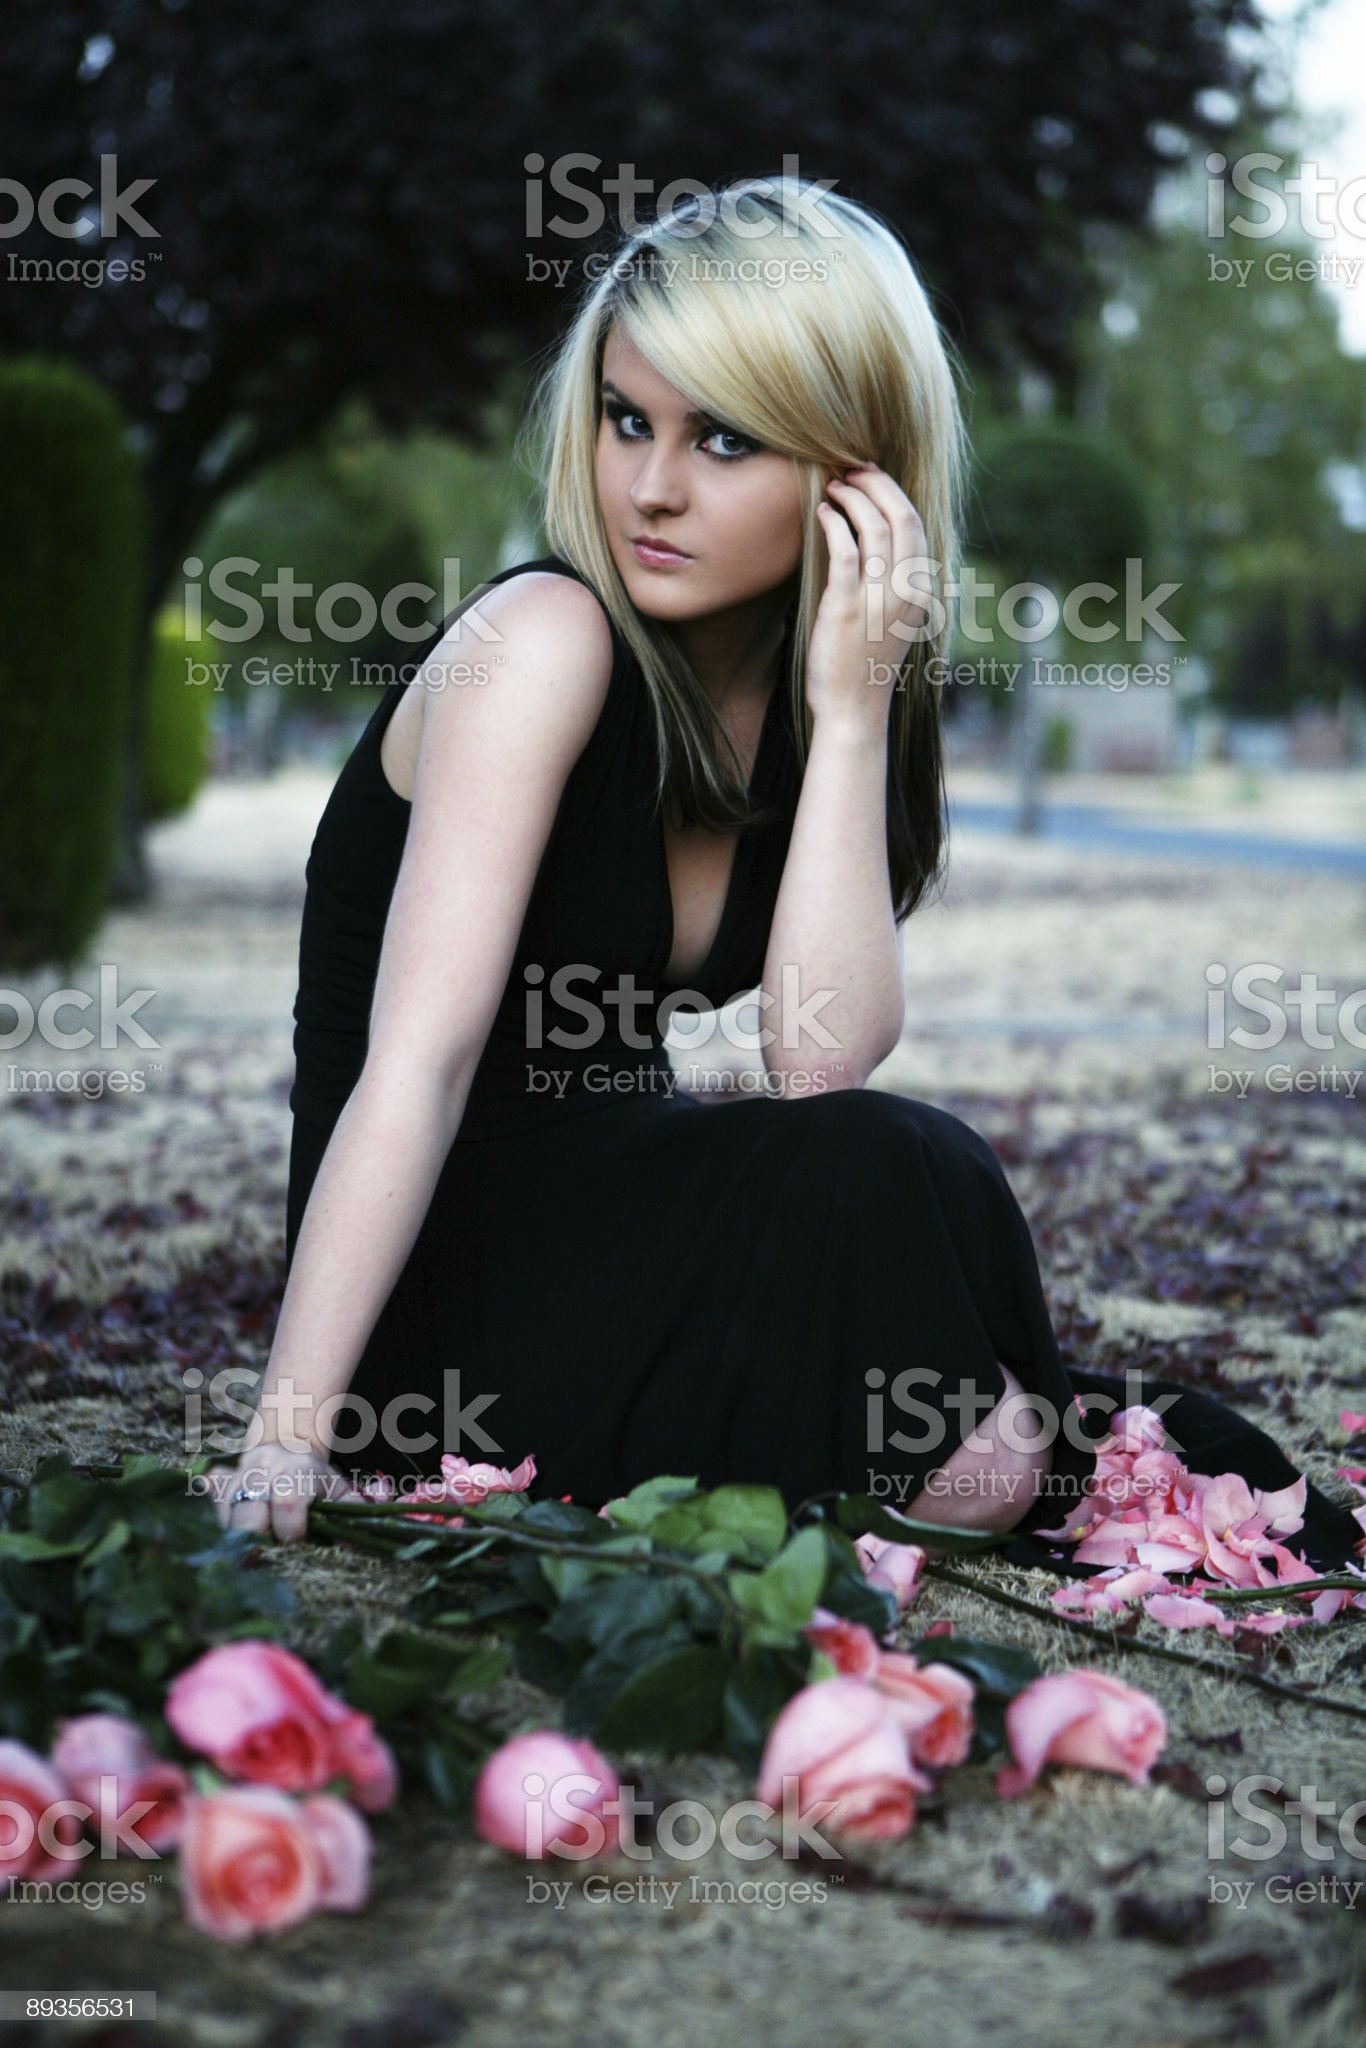 Blonde Female Sitting WIth Roses royalty-free stock photo